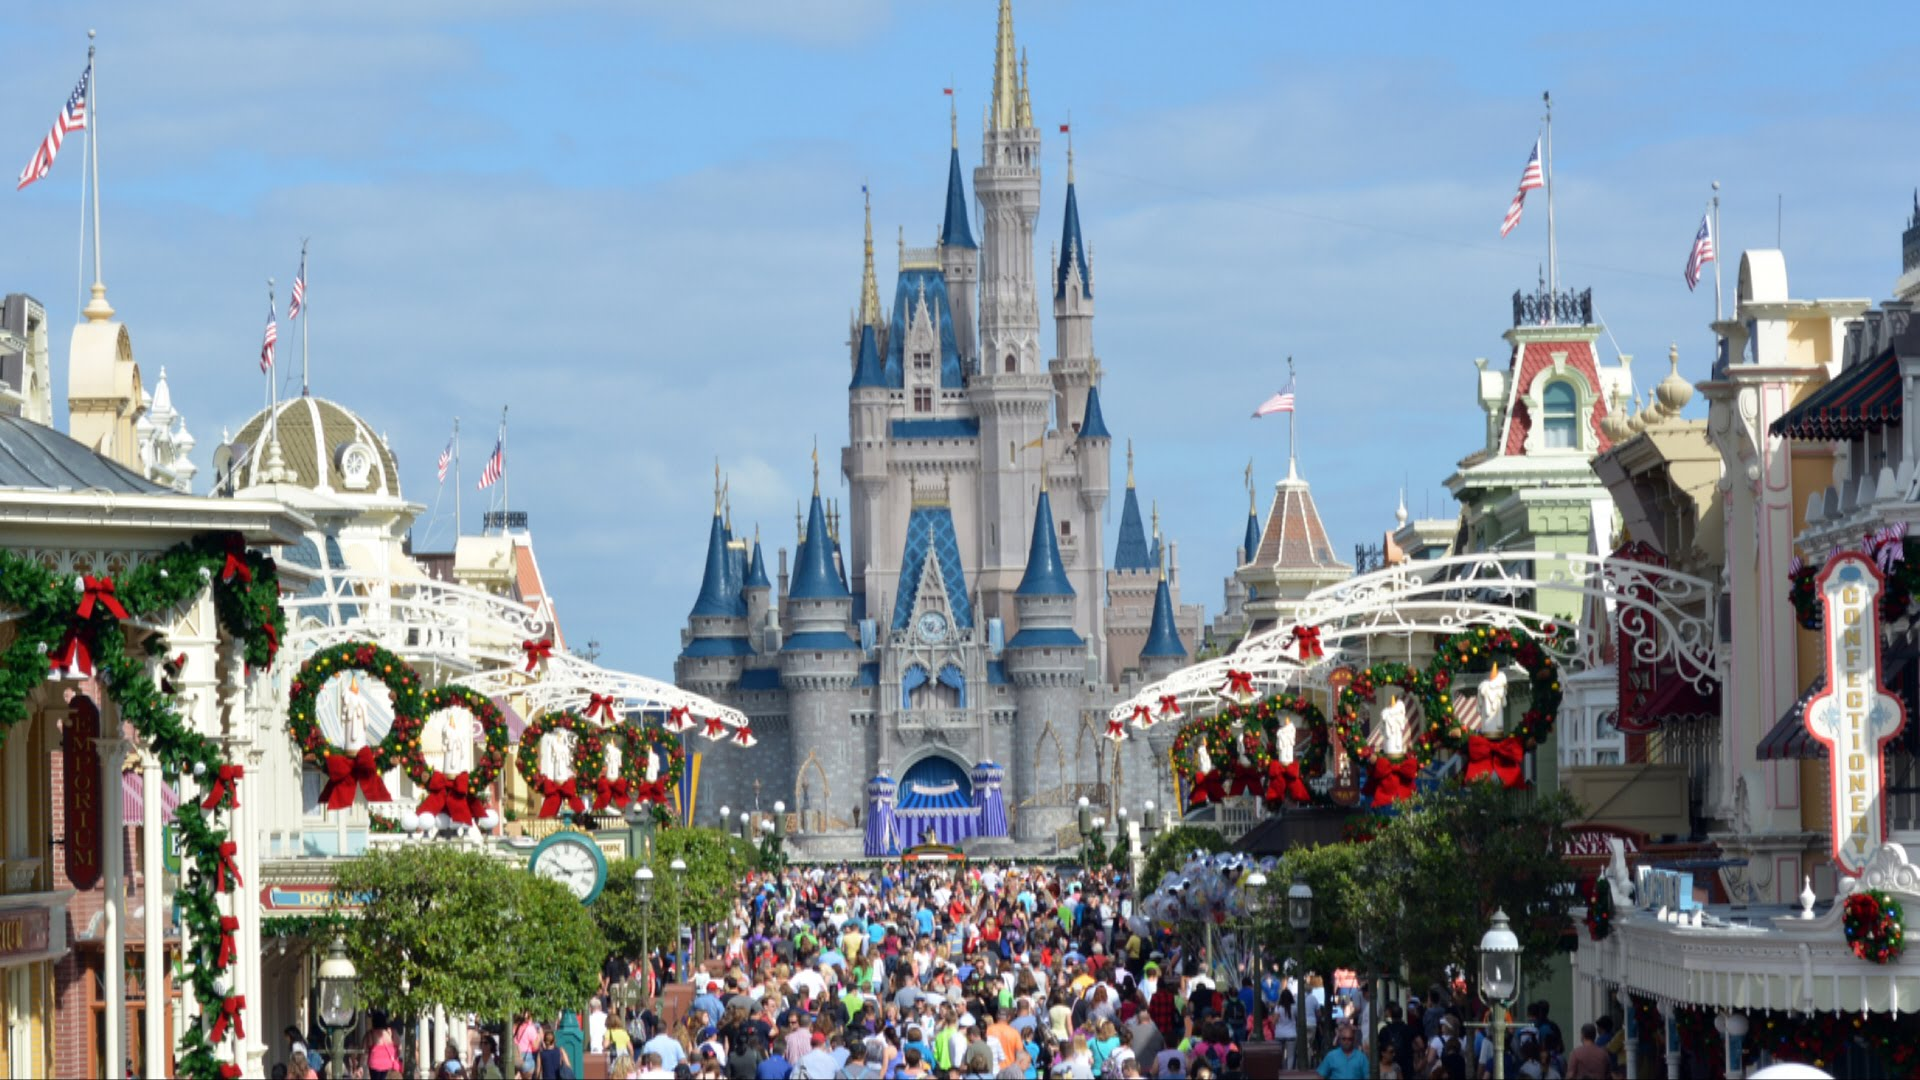 magic kingdom christmas decorations - When Is Disney World Decorated For Christmas